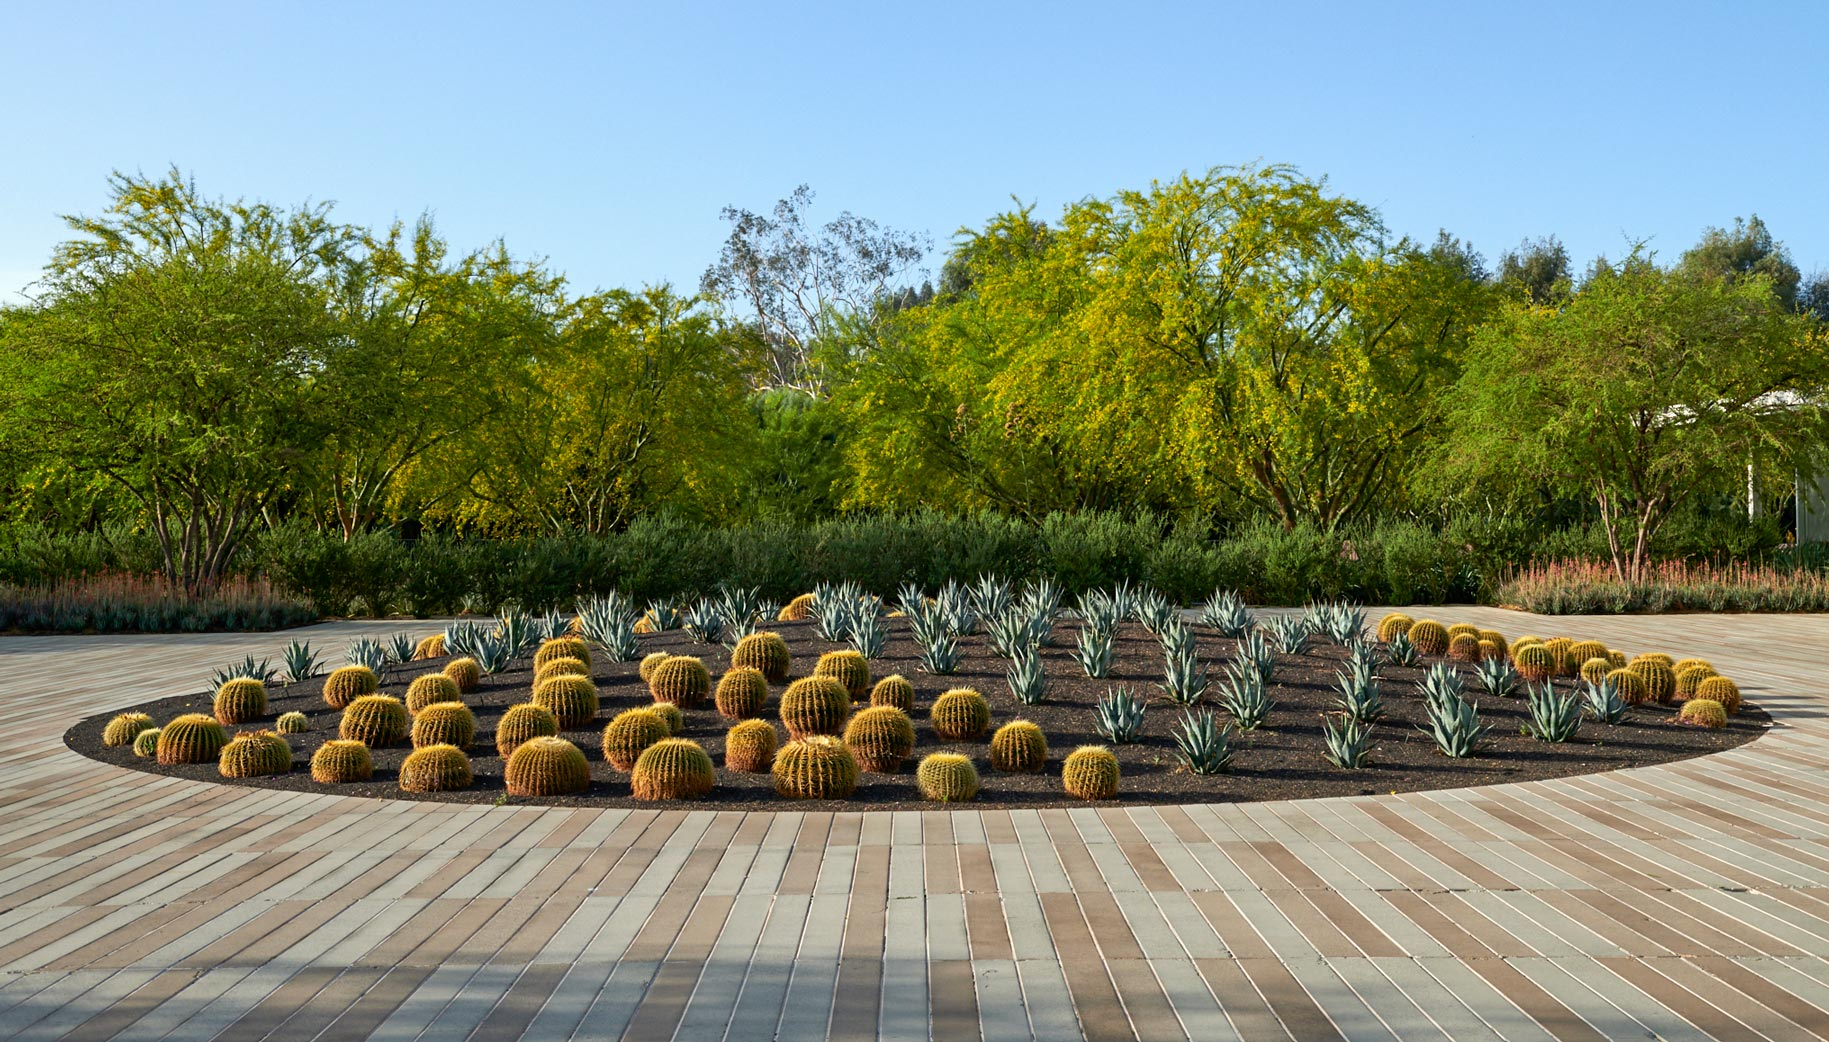 Golden Barrel cacti planted in rows in a circular planter at the entry court of Sunnylands Center and Gardens.